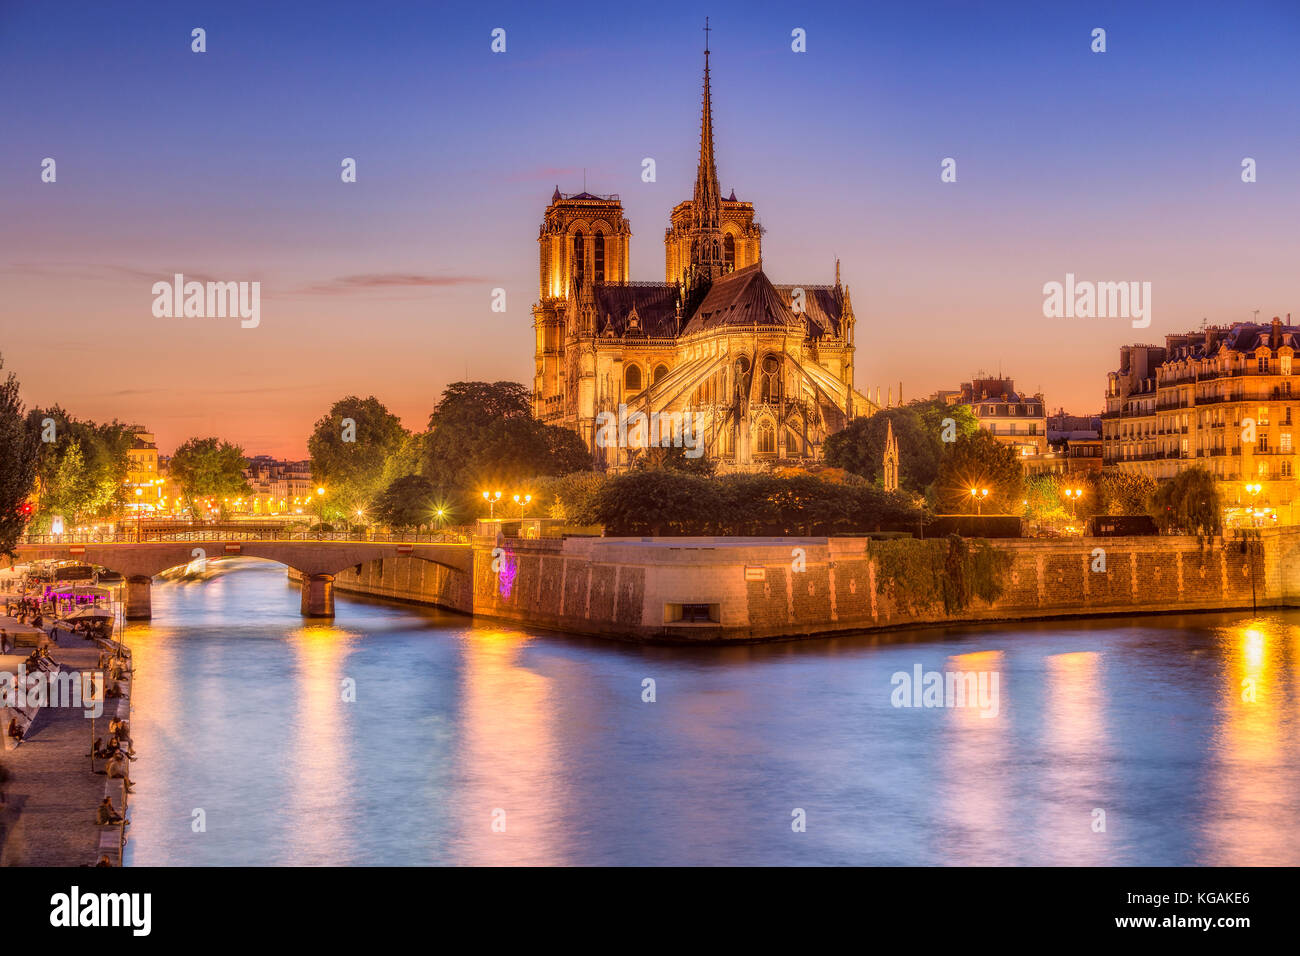 Notre Dame cathedral in Paris, France at night. Scenic skyline at blue hour. - Stock Image